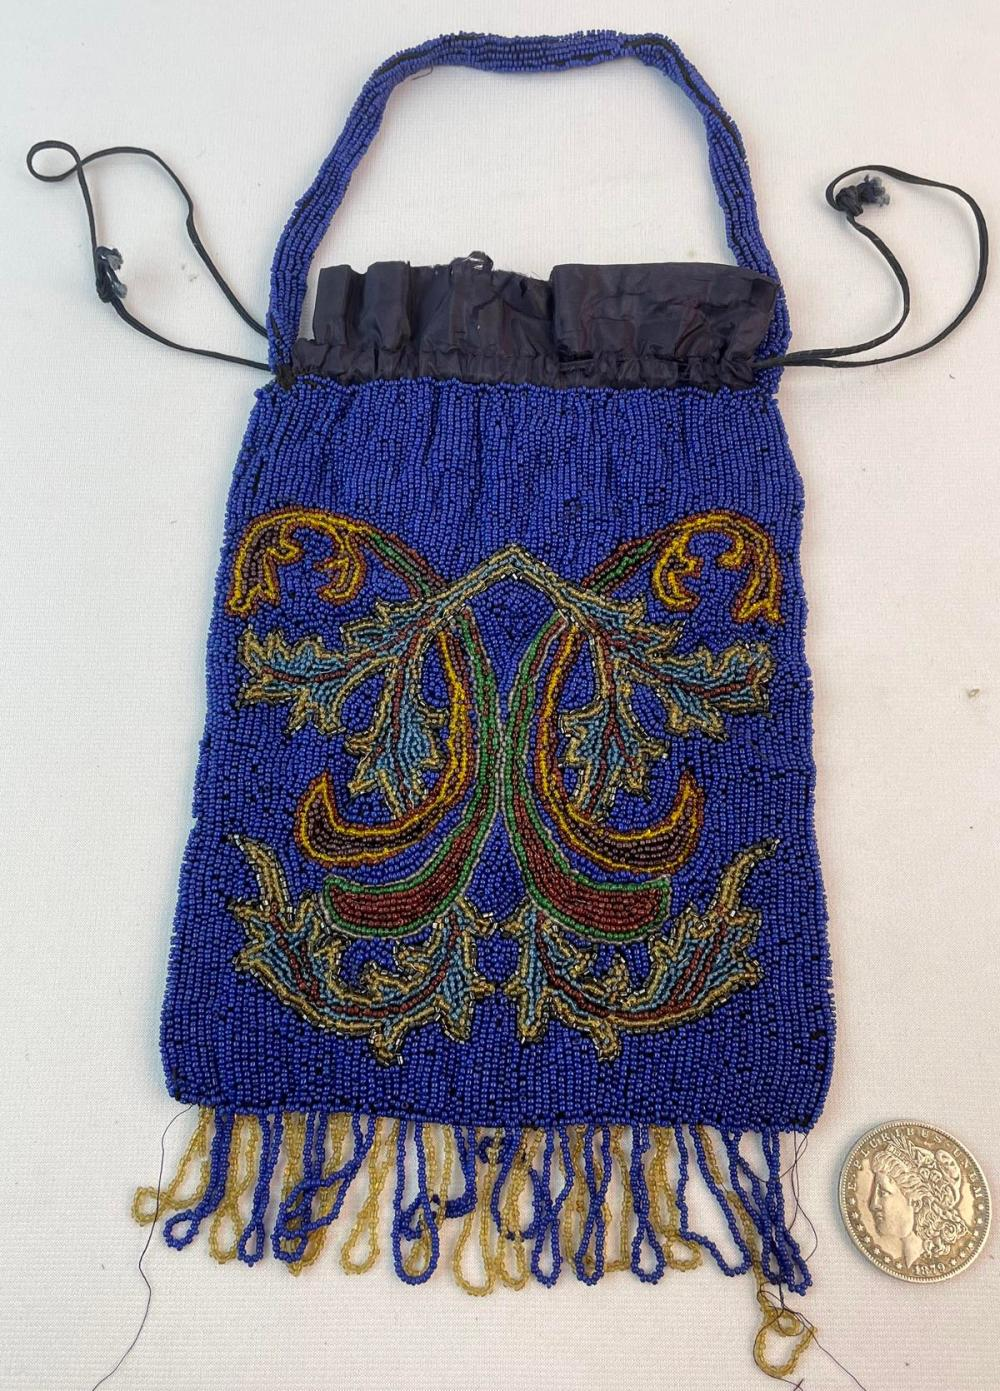 Antique c. 1900 Cobalt Blue and Multi Colored Floral Accent Beaded Large Bag Made in France